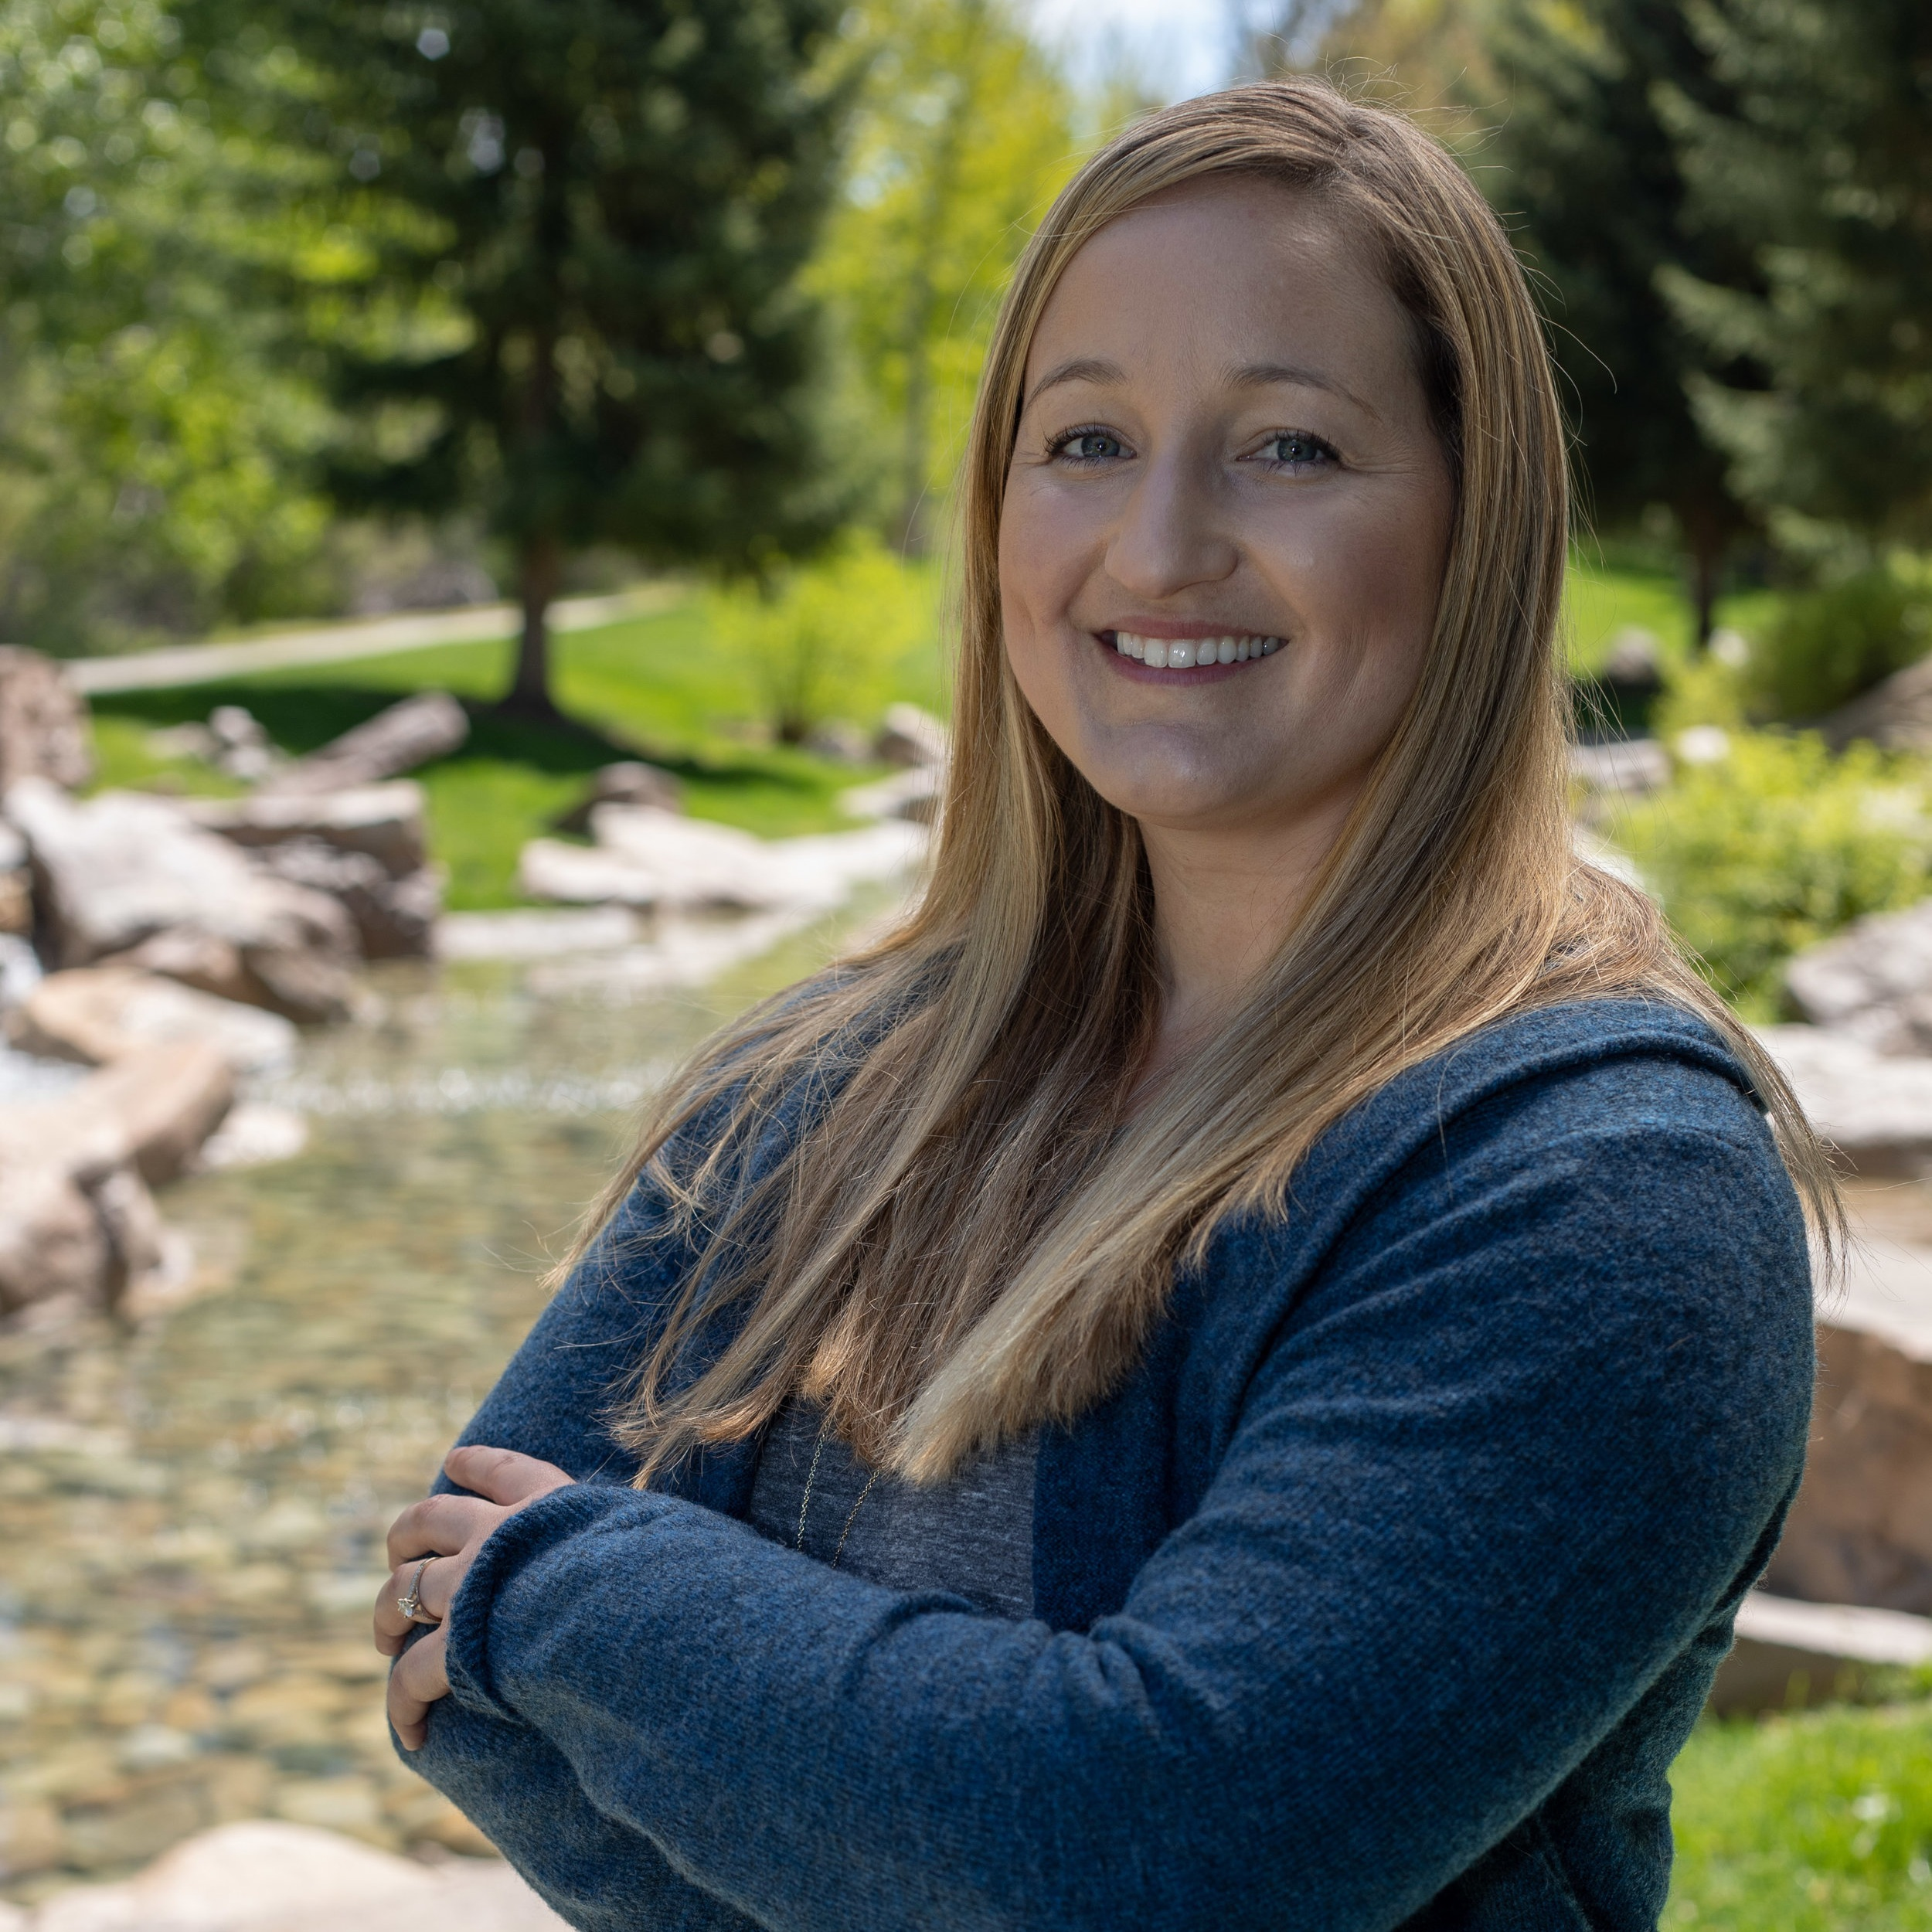 Natalie Newell    Academic Advisor, Boise State University   Natalie Newell is an Academic Advisor for the College of Health Science Student Services with Boise State University. She served in the U.S. Navy as an AD2(AW) with VAQ-132 in Whidbey Island, WA (2010-2014). Natalie has a background in communication skills, public speaking, management, student affairs/services, federal financial aid policy, and higher education. She has worked specifically with a non-traditional population with the Bachelor of Applied Science Program, in addition to first/second year pre-nursing students. Natalie holds a BA in Communication with an emphasis in Organizational/Relational Studies and a Masters in Educational Leadership from Boise State University. In her spare time, you can find Natalie enjoying the Ridge to Rivers system in the Boise Foothills with her dogs, Ellie and Cooper.